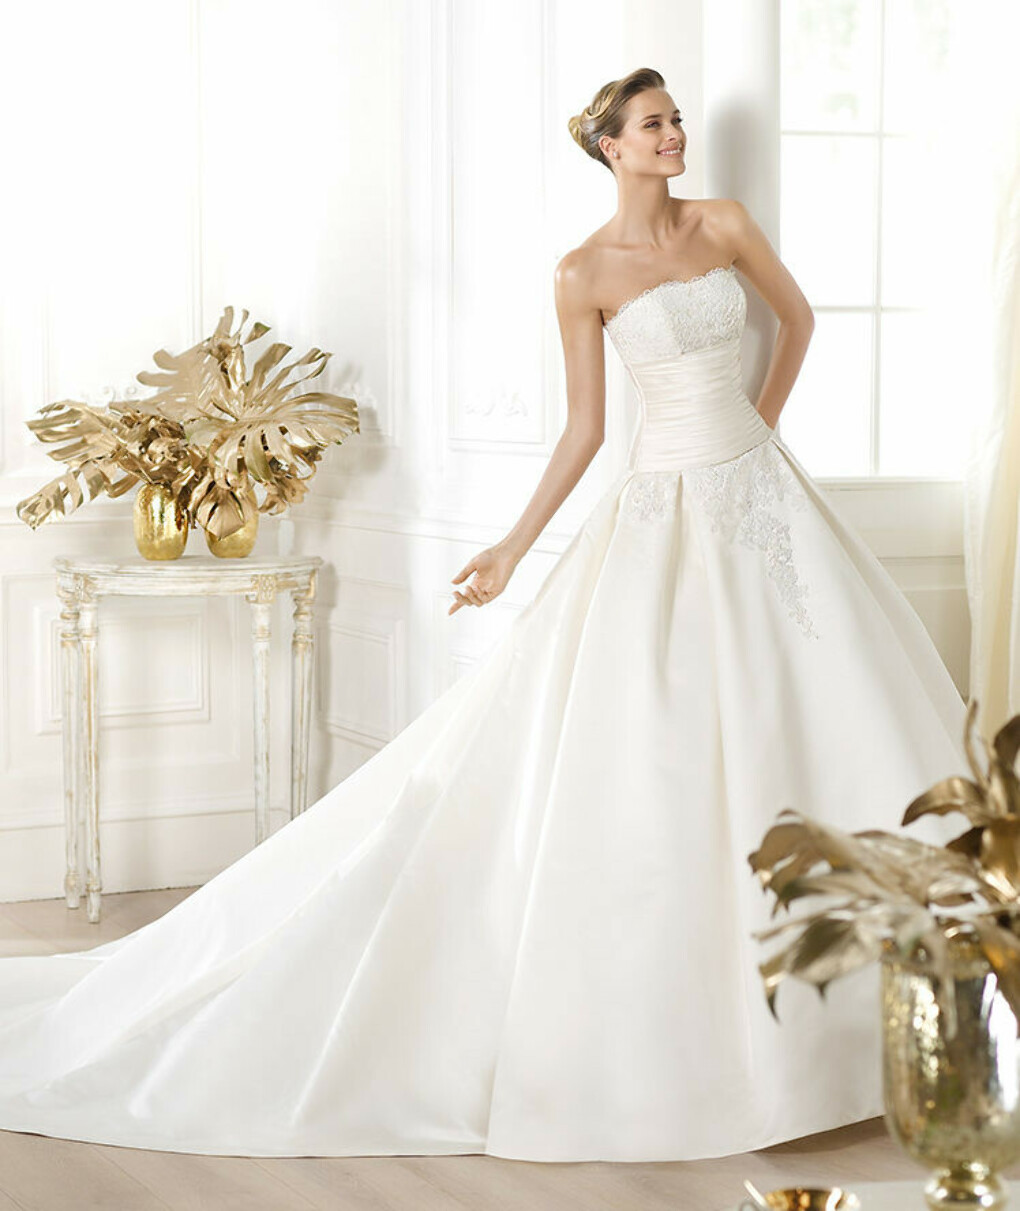 Laurain wedding dress by Pronovias